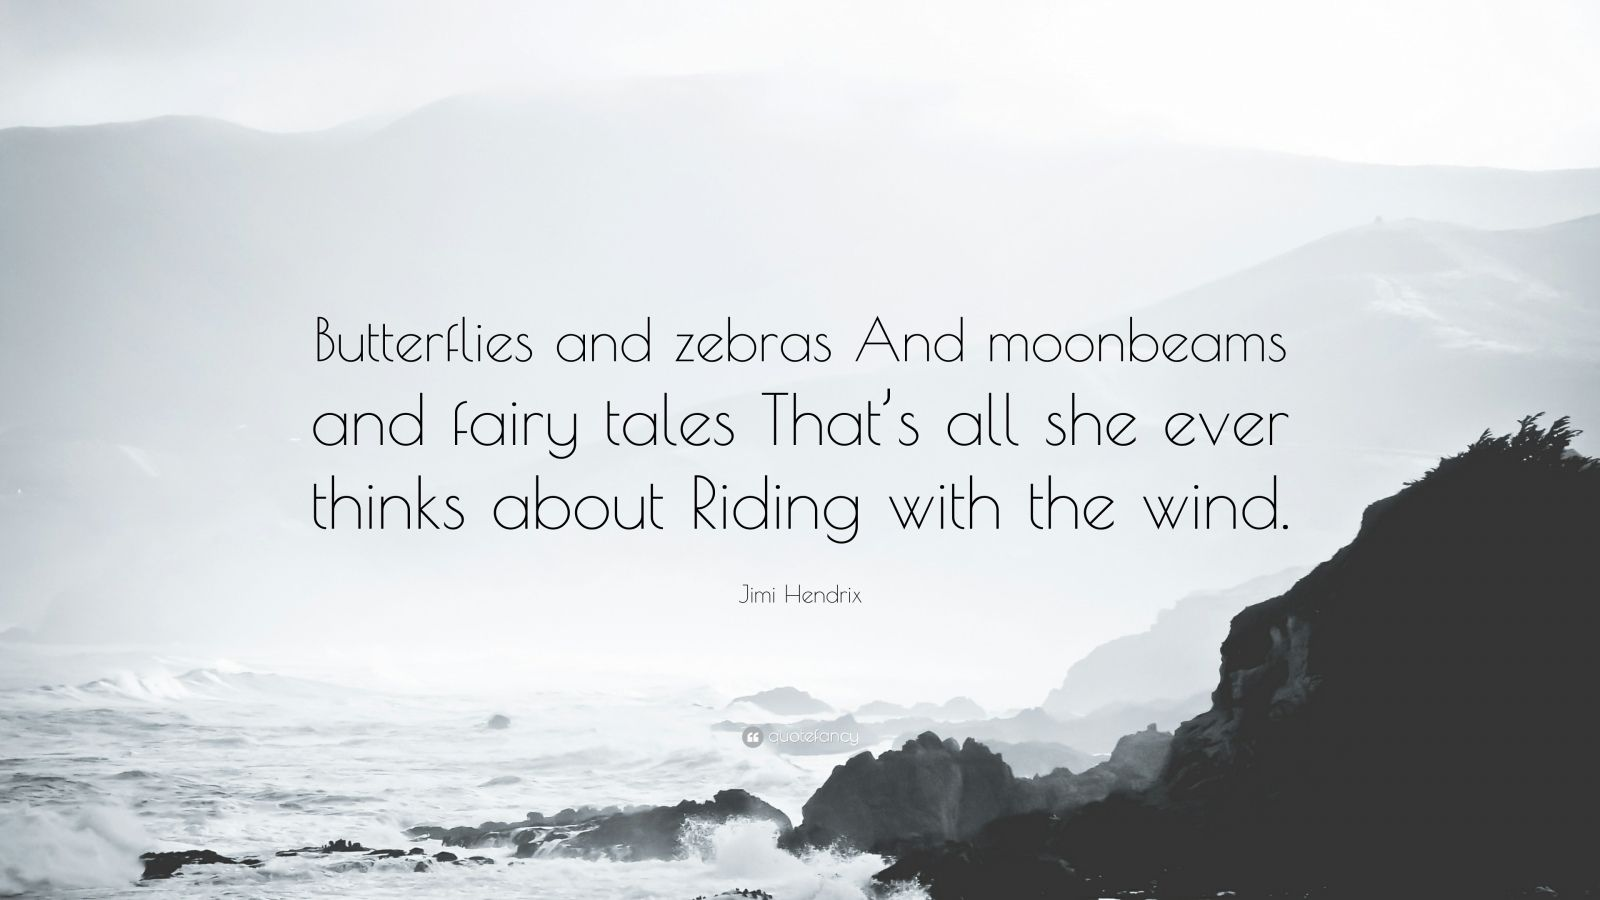 """Jimi Hendrix Quote: """"Butterflies and zebras And moonbeams and fairy tales That's all she ever thinks about Riding with the wind."""""""